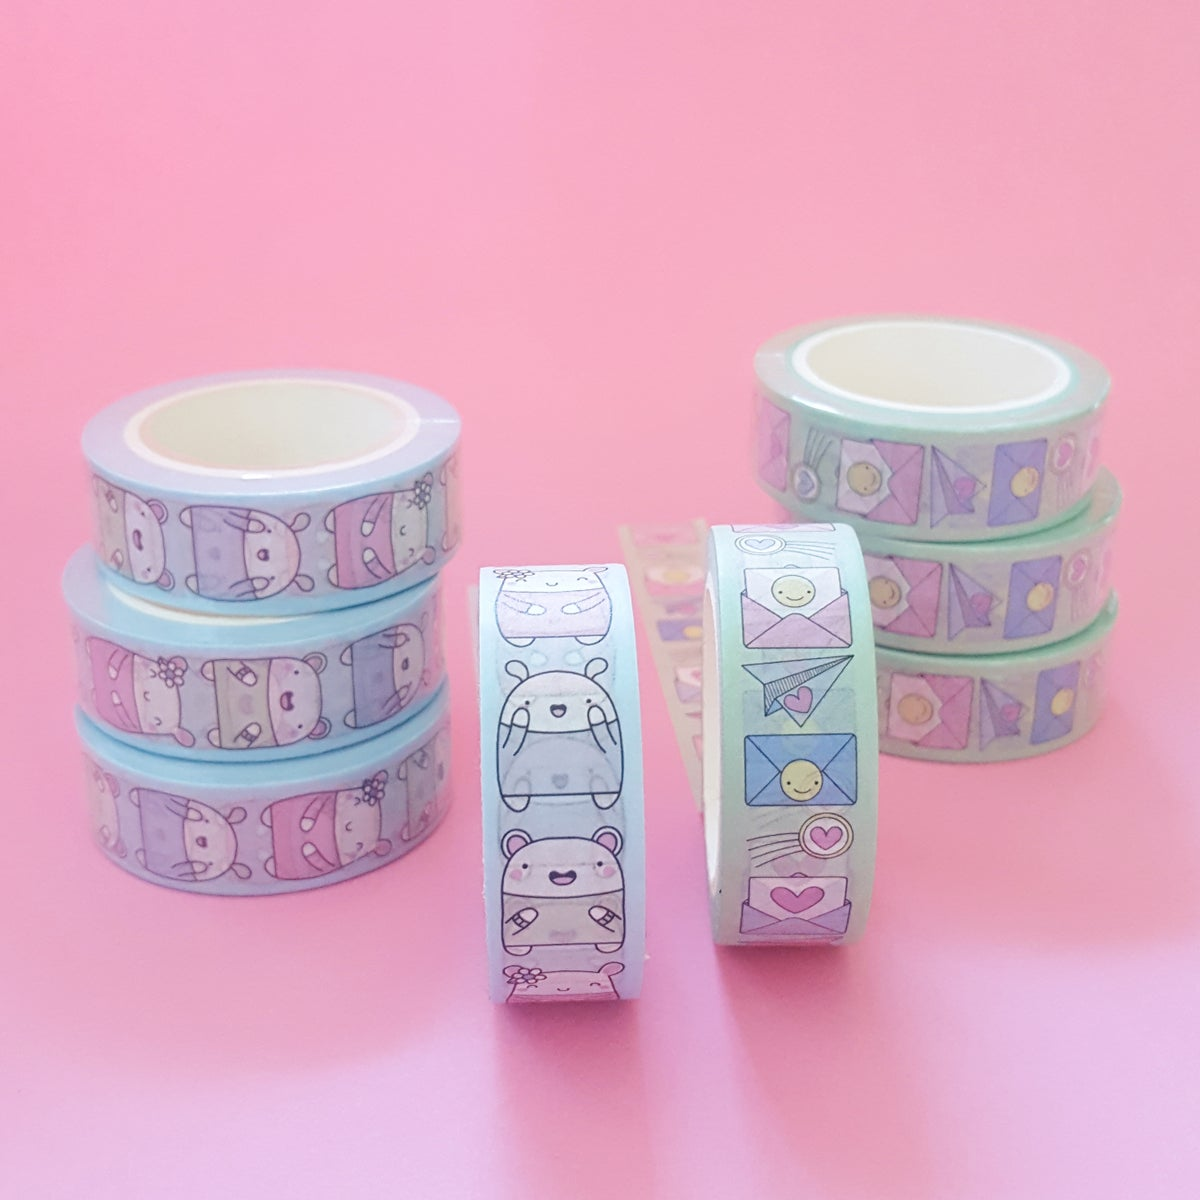 Critters & Smiley Snail Mail Washi Tape